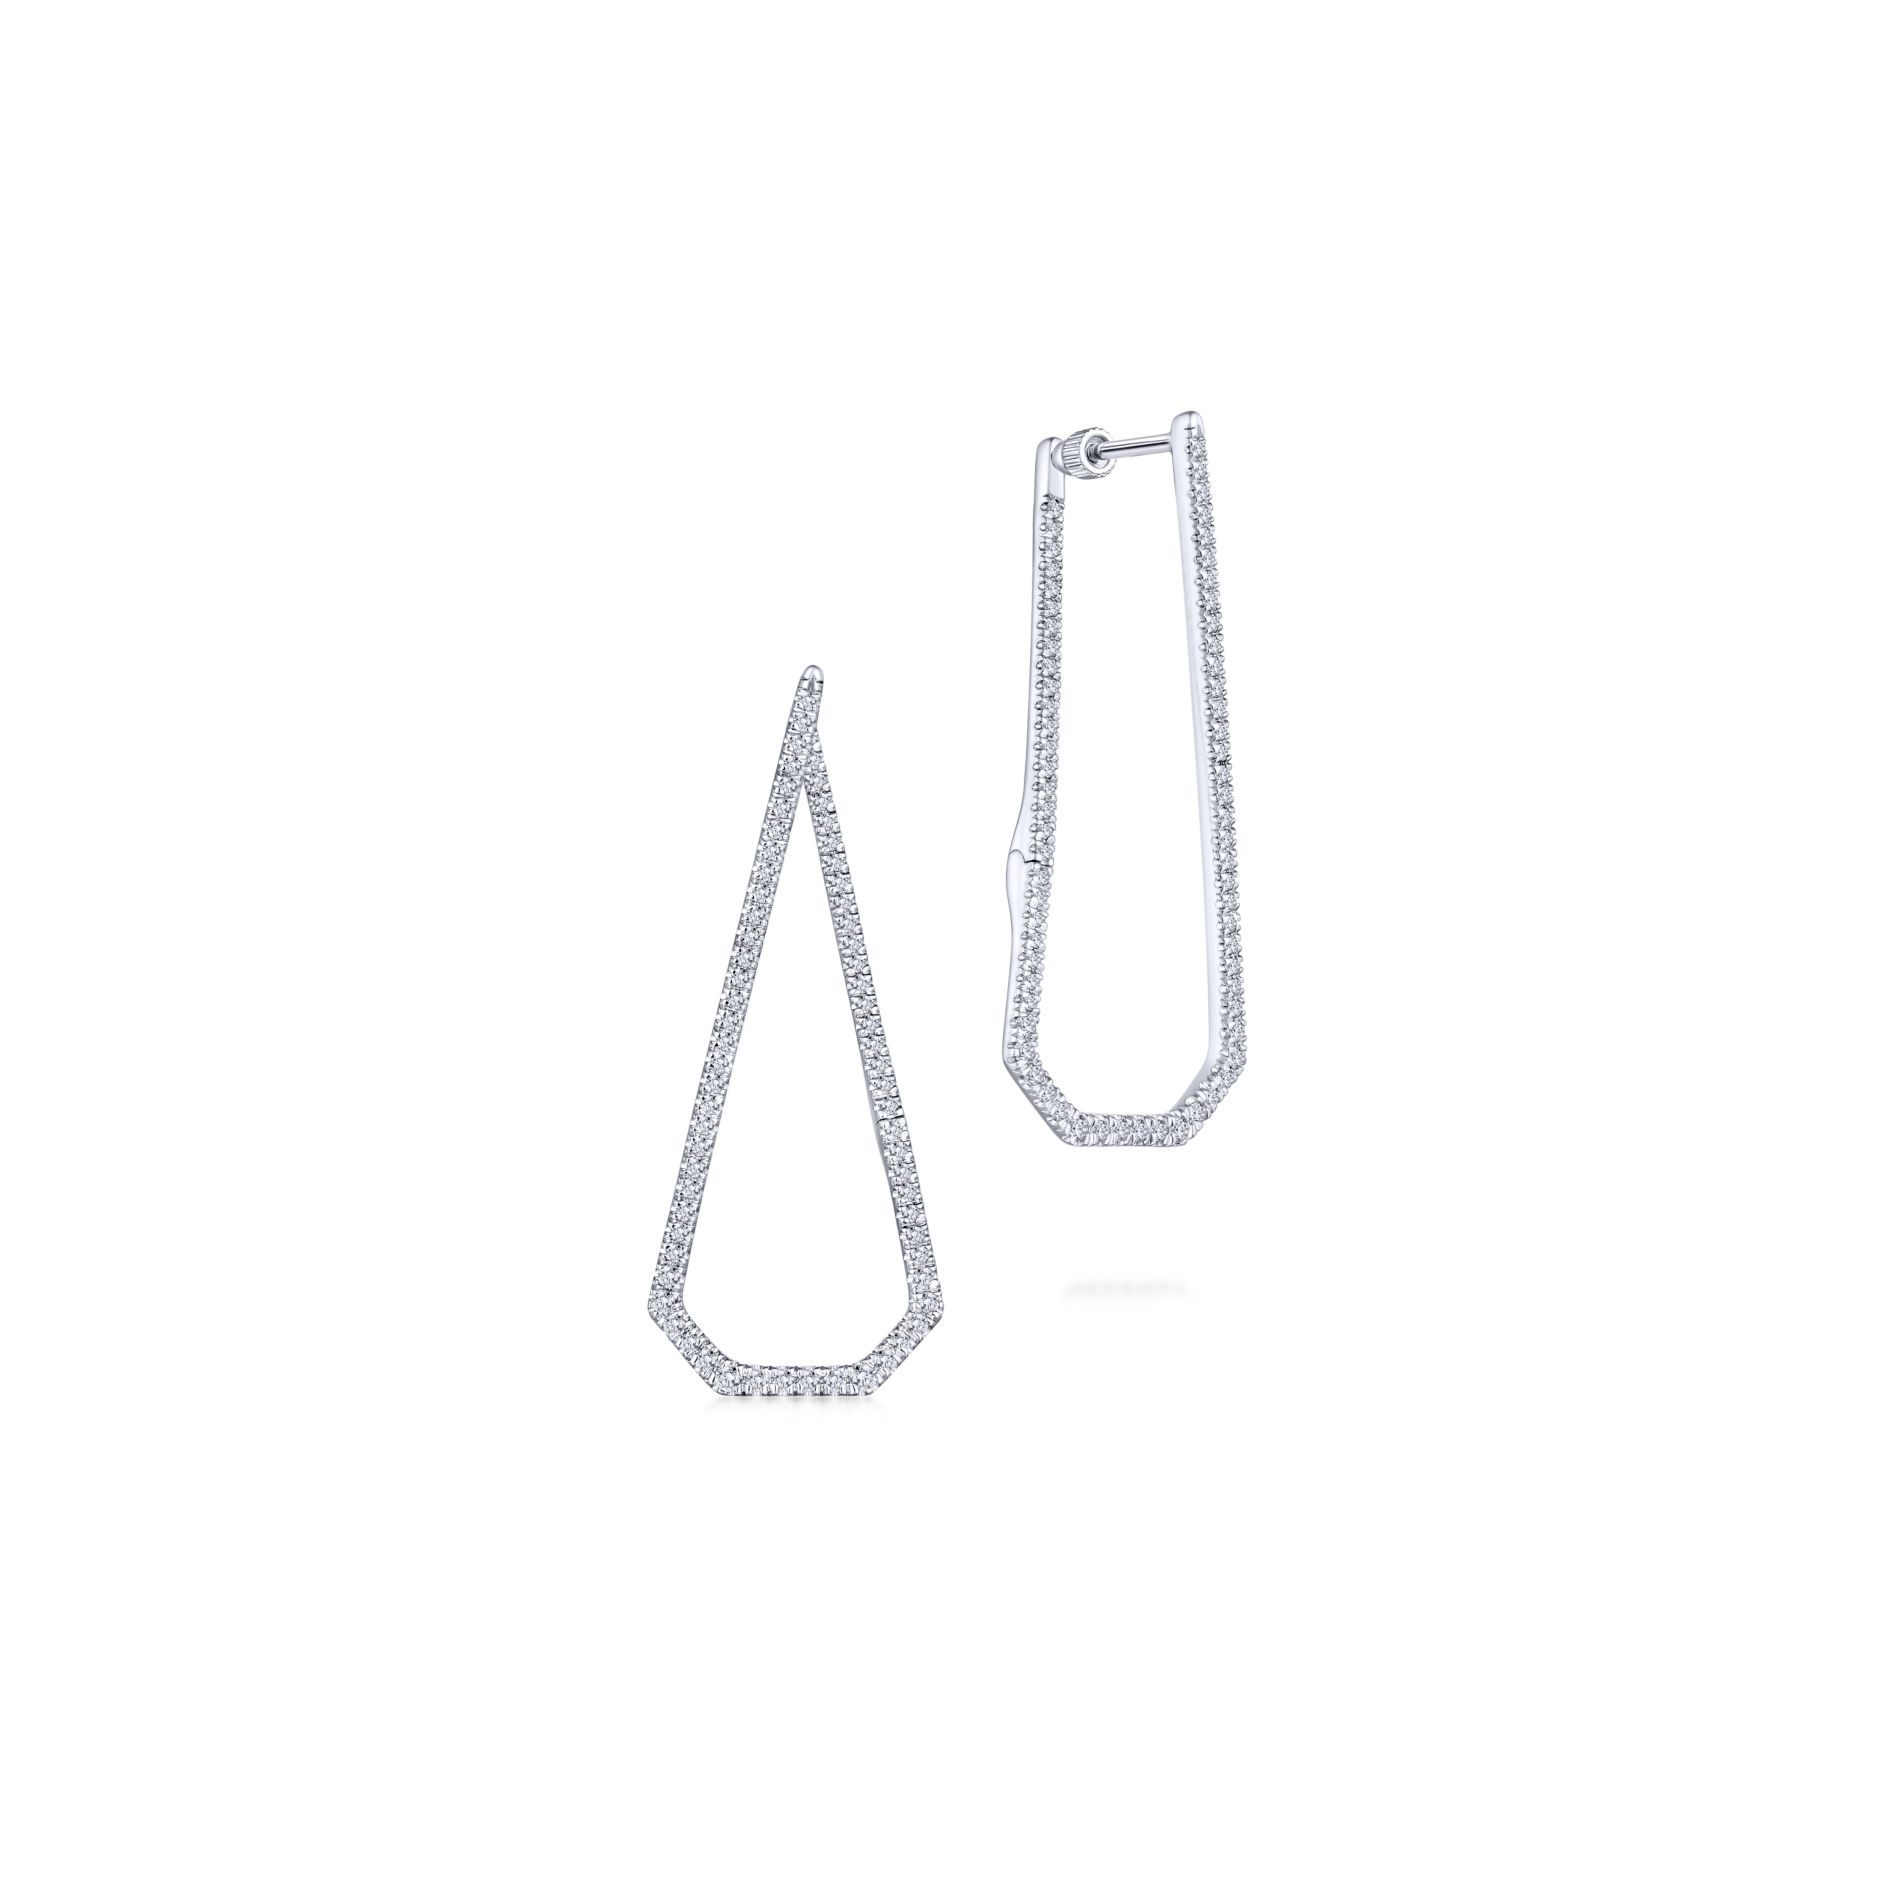 Earrings - INTRICARTE DIAMOND HOOP EARRINGS